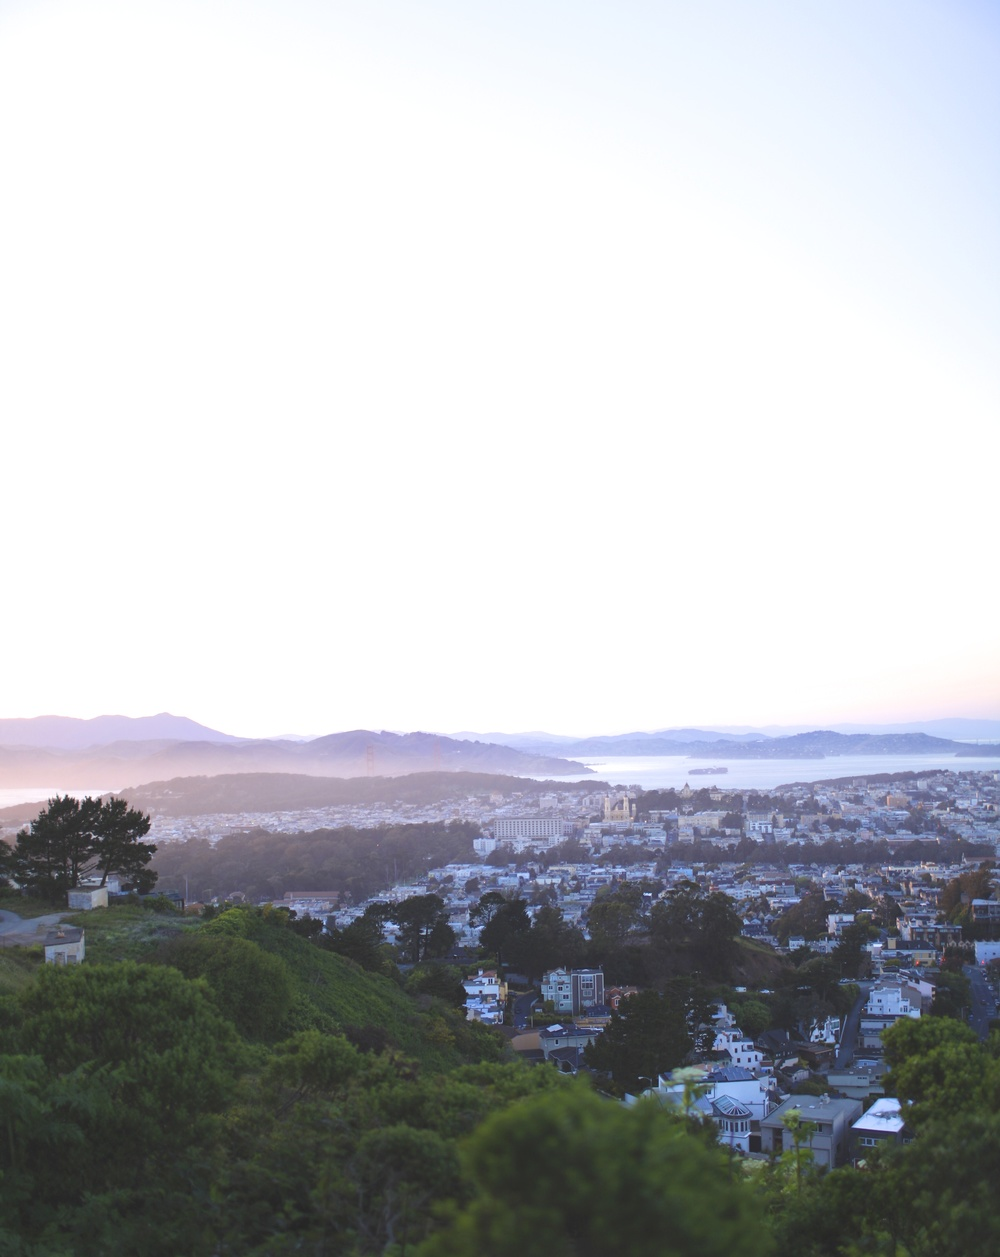 An unconventional view of the Golden Gate Bridge with its neighboring communities, from the Twin Peaks scenic ridge